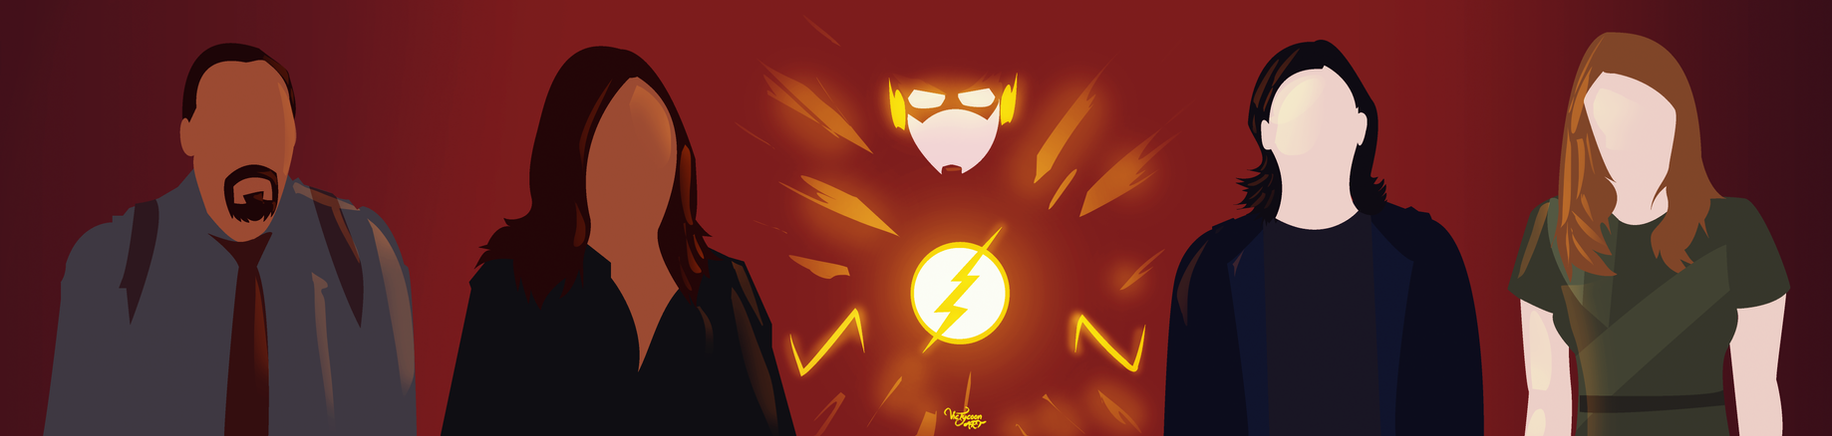 The Flash Team by VicTycoon